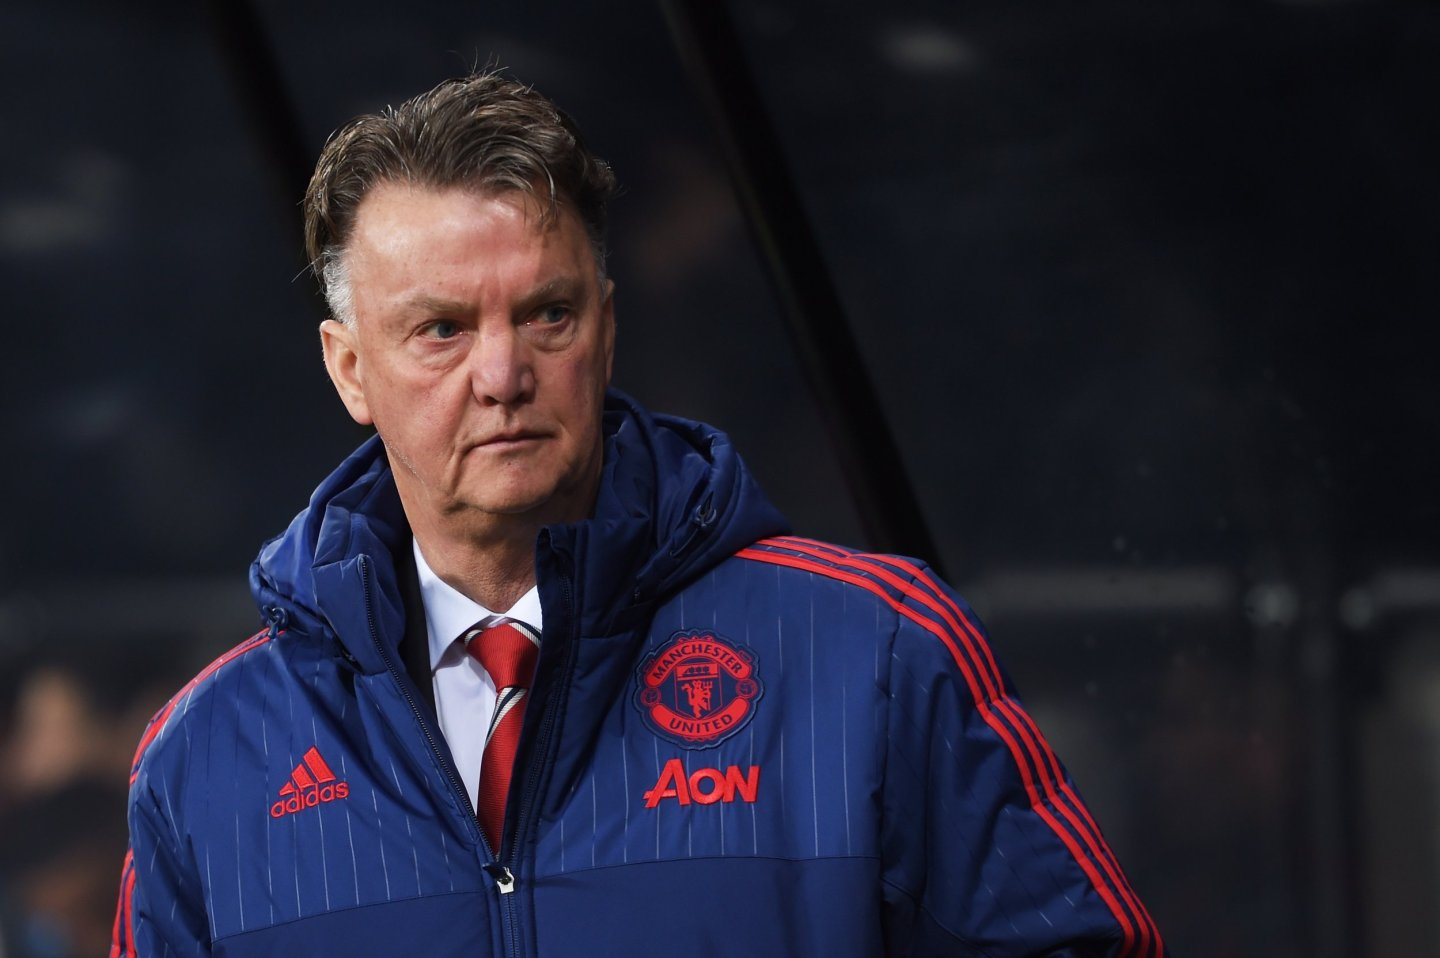 Louis van Gaal slams Ed Woodward's 'poor arguments' in sacking - Bóng Đá